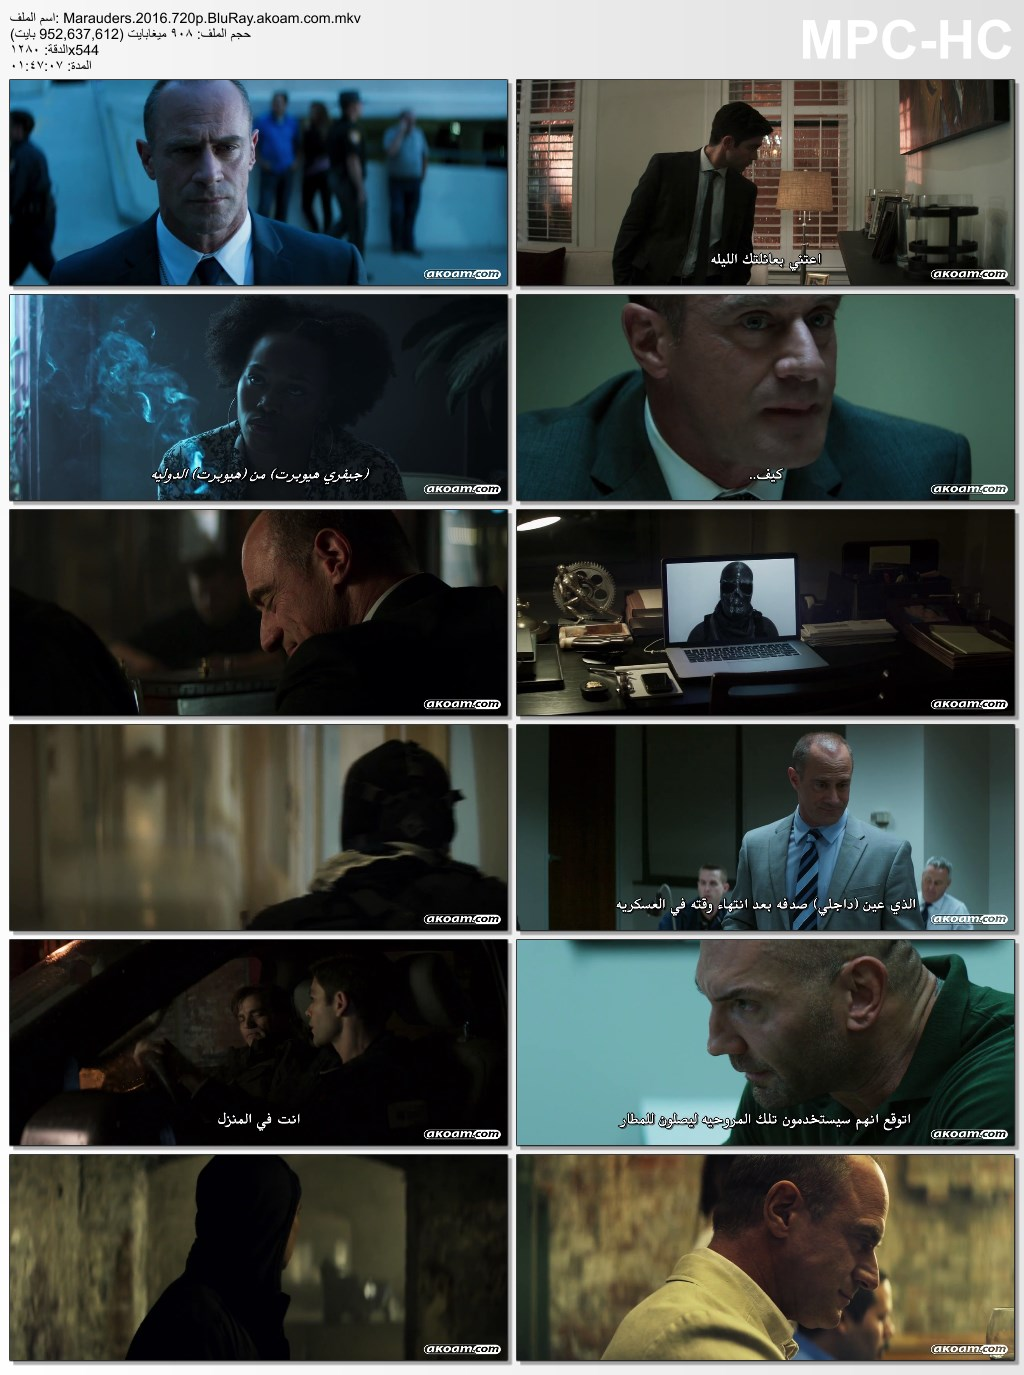 Bruce Willis,بروس ويلس,افلام بروس ويلس,جميع افلام بروس ويلس,Bruce Willis Movies,Die Hard,The Expendables,Pulb fiction,Precious Cargo,Sin City A Dame To Kill For,Red,GI Joe Retaliation